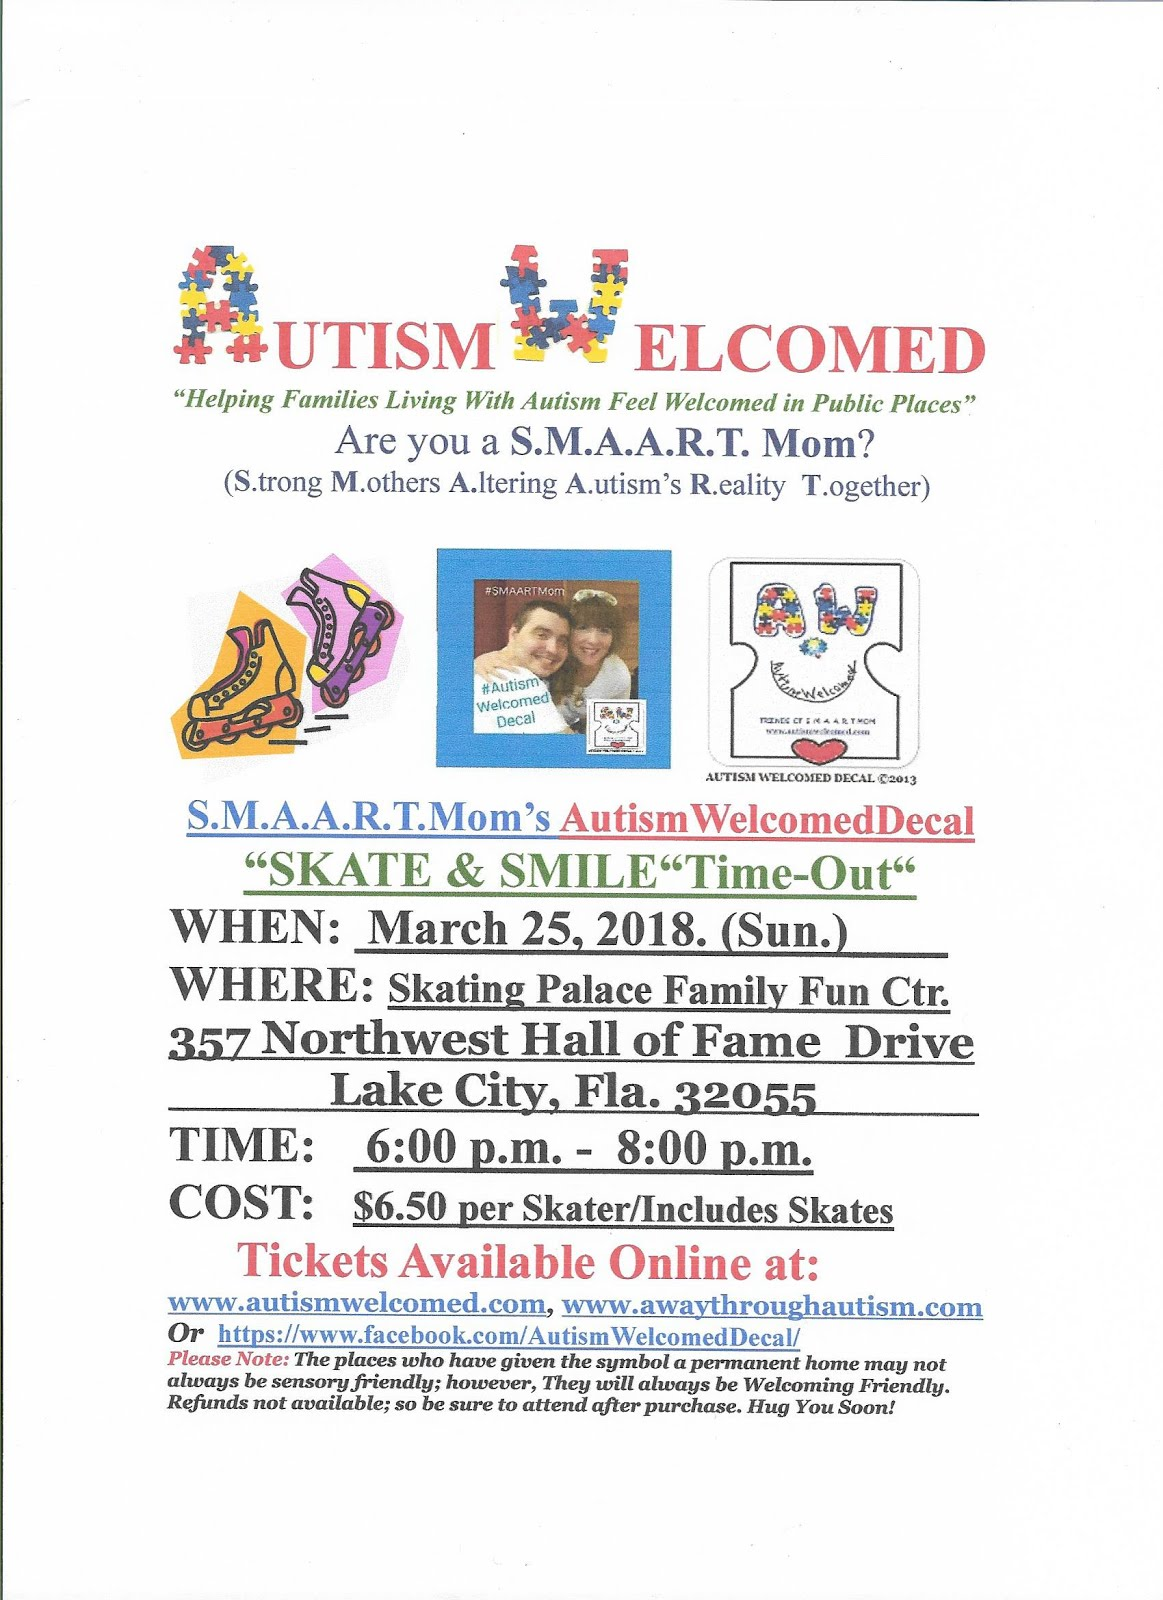 "Autism Welcomed Decal (March 25) ""Skate & Smile"" in Lake City,FL!"